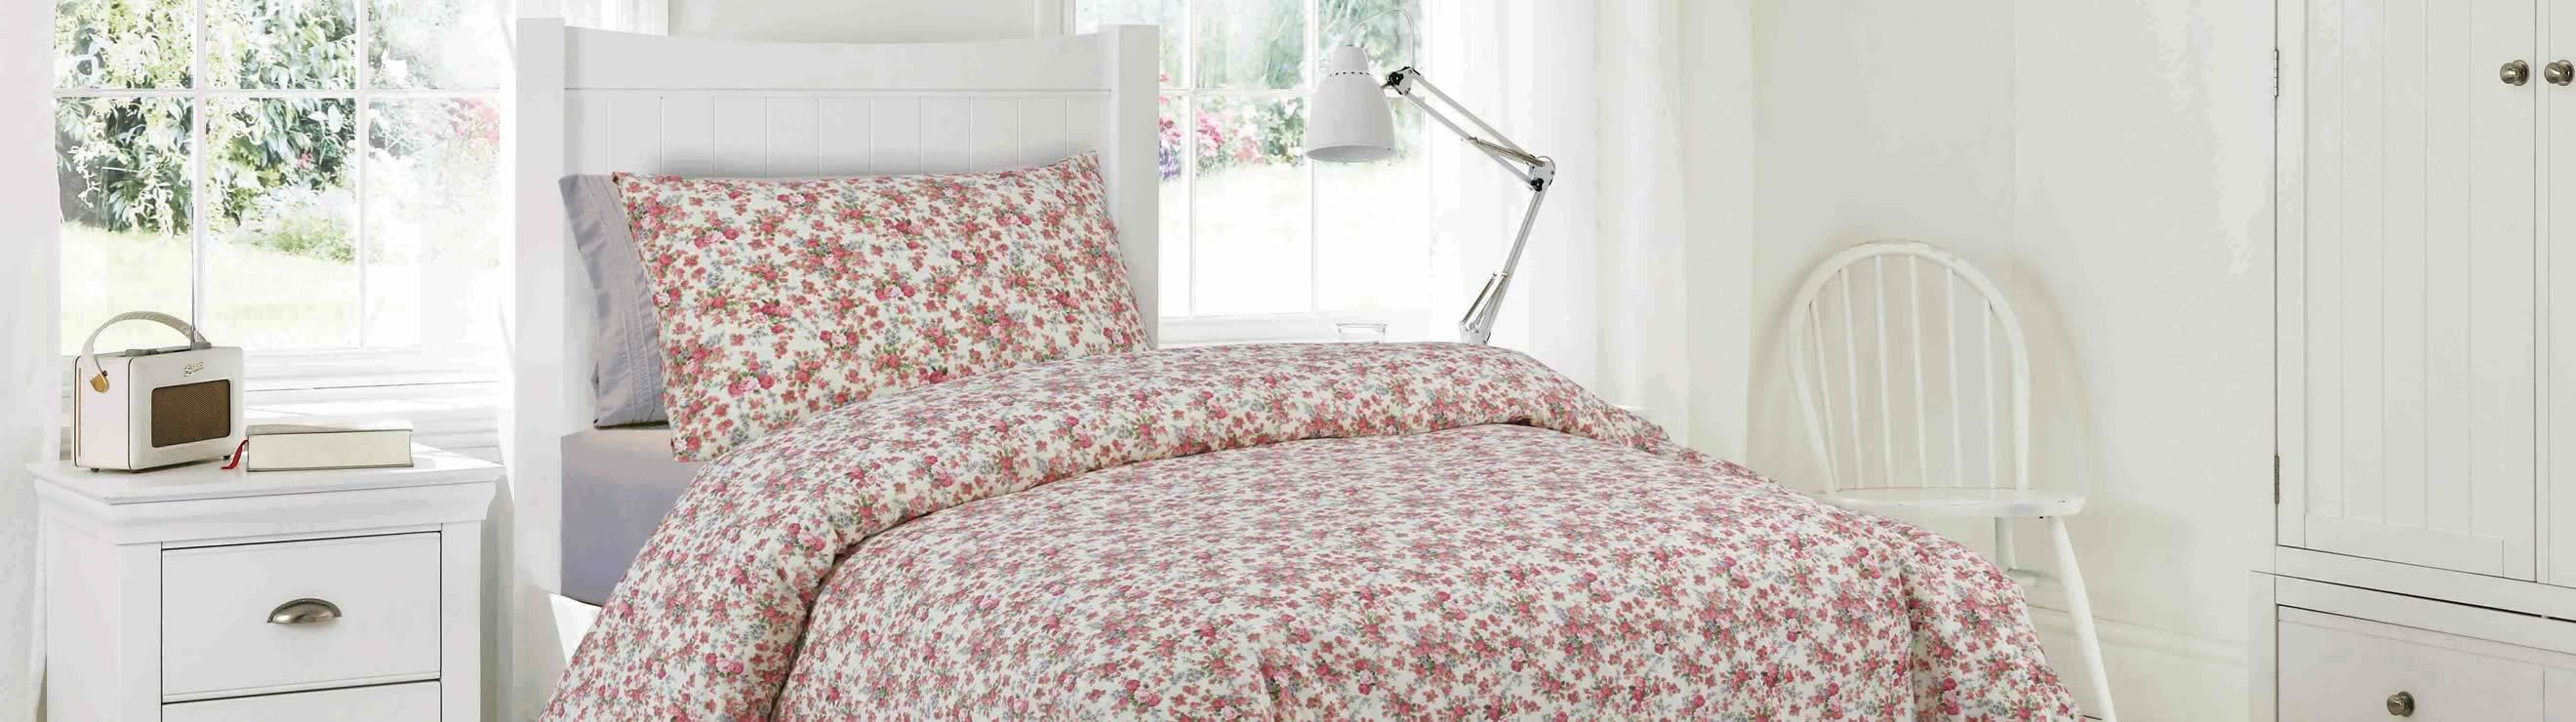 Duvet covers from single to super king size, many colours and patterns to choose from